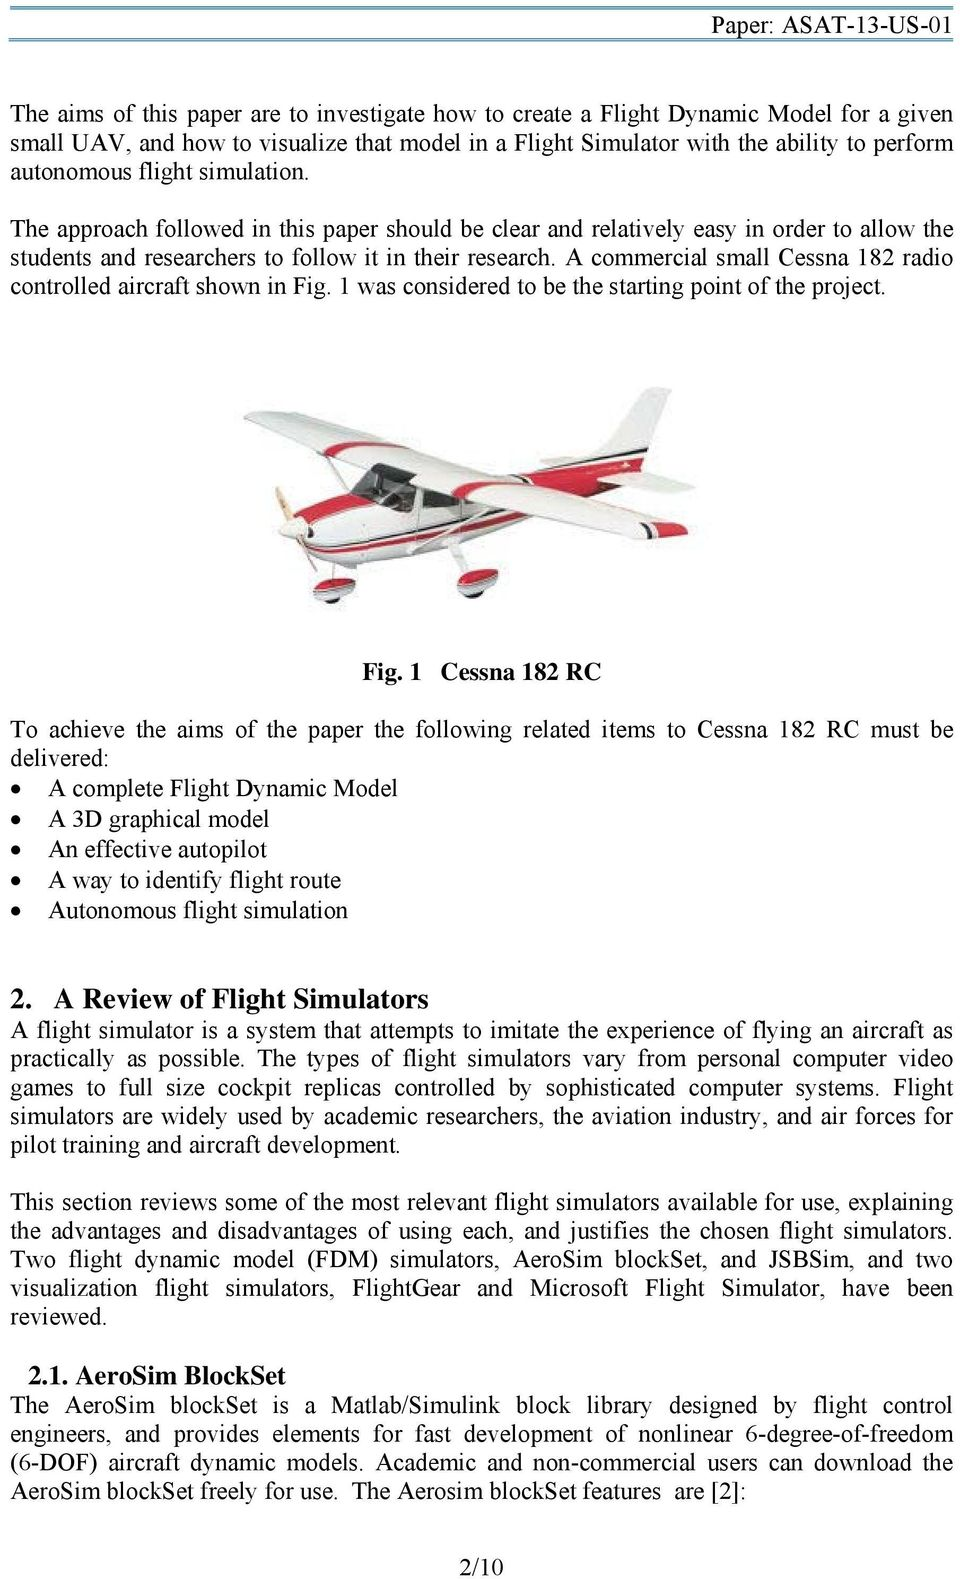 Modeling and Autonomous Flight Simulation of a Small